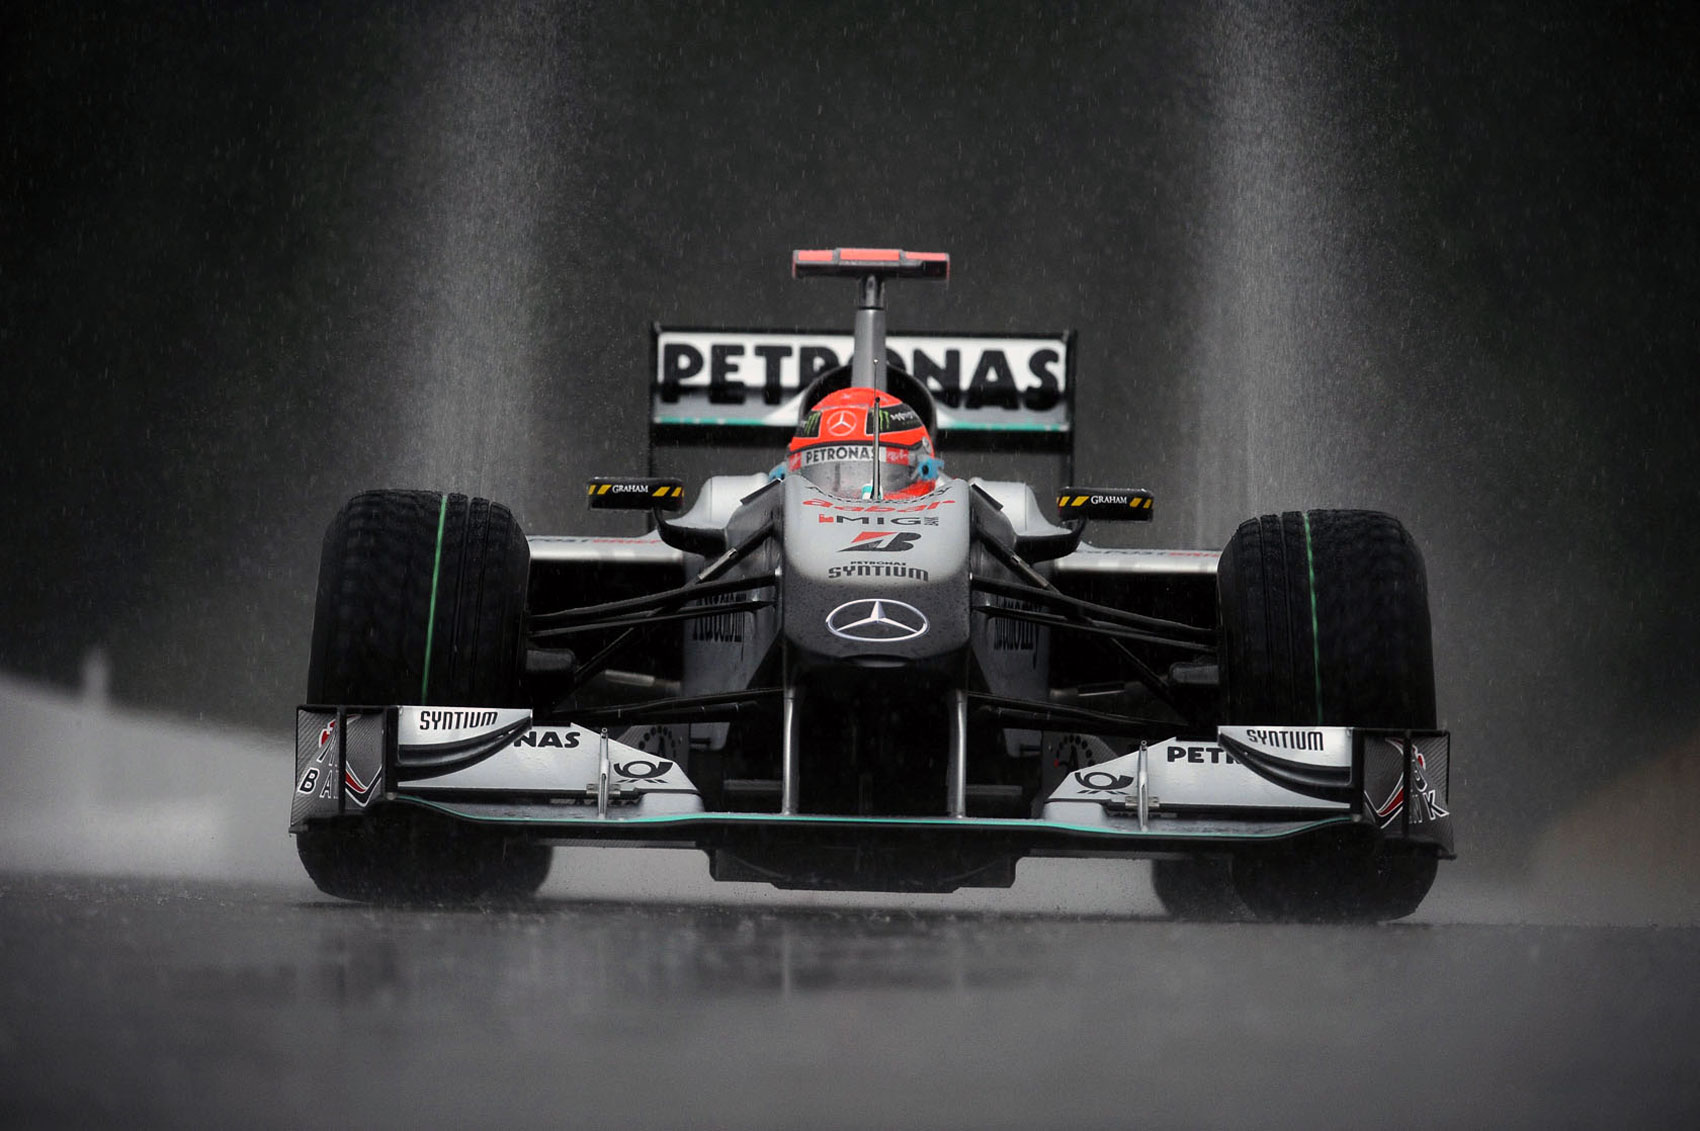 F1 Grand Prix Wallpaper 14